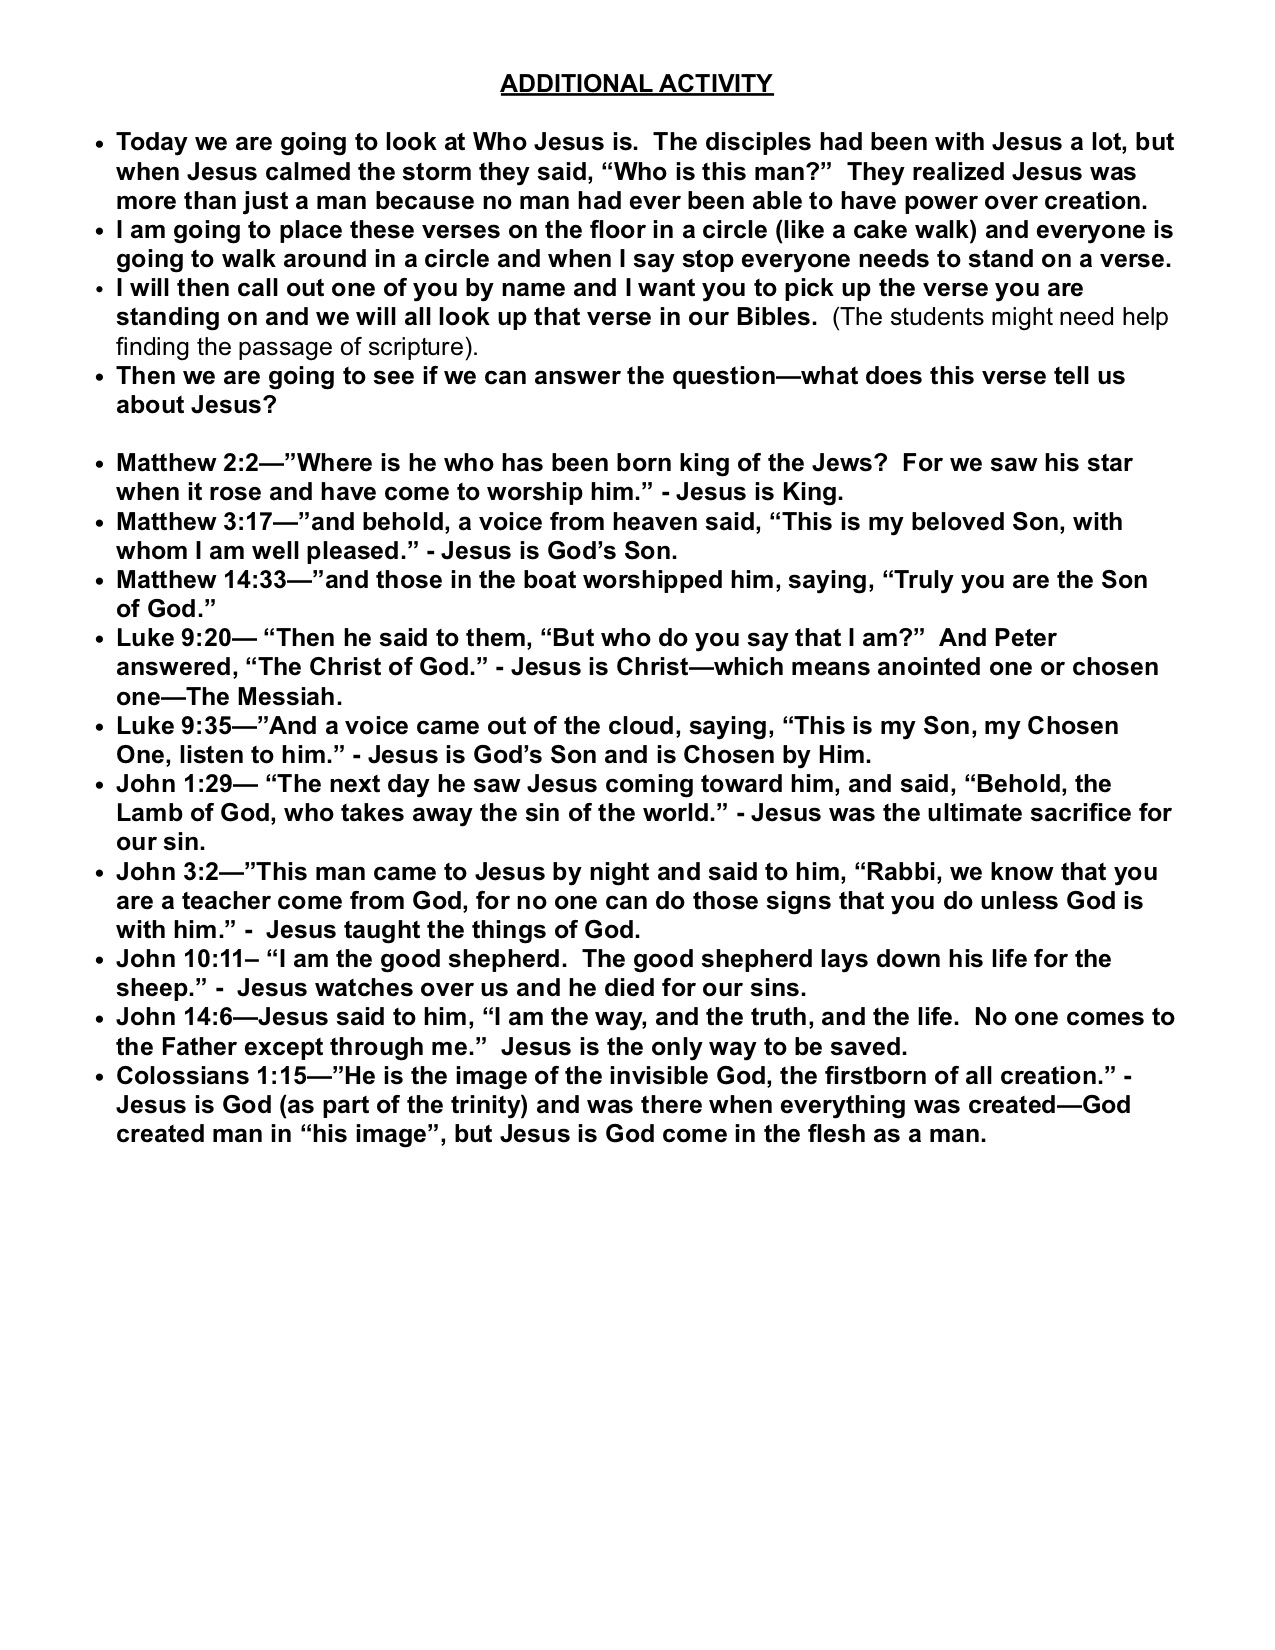 U29 L1 Jesus has power over creation AA 4th-5th PG 2